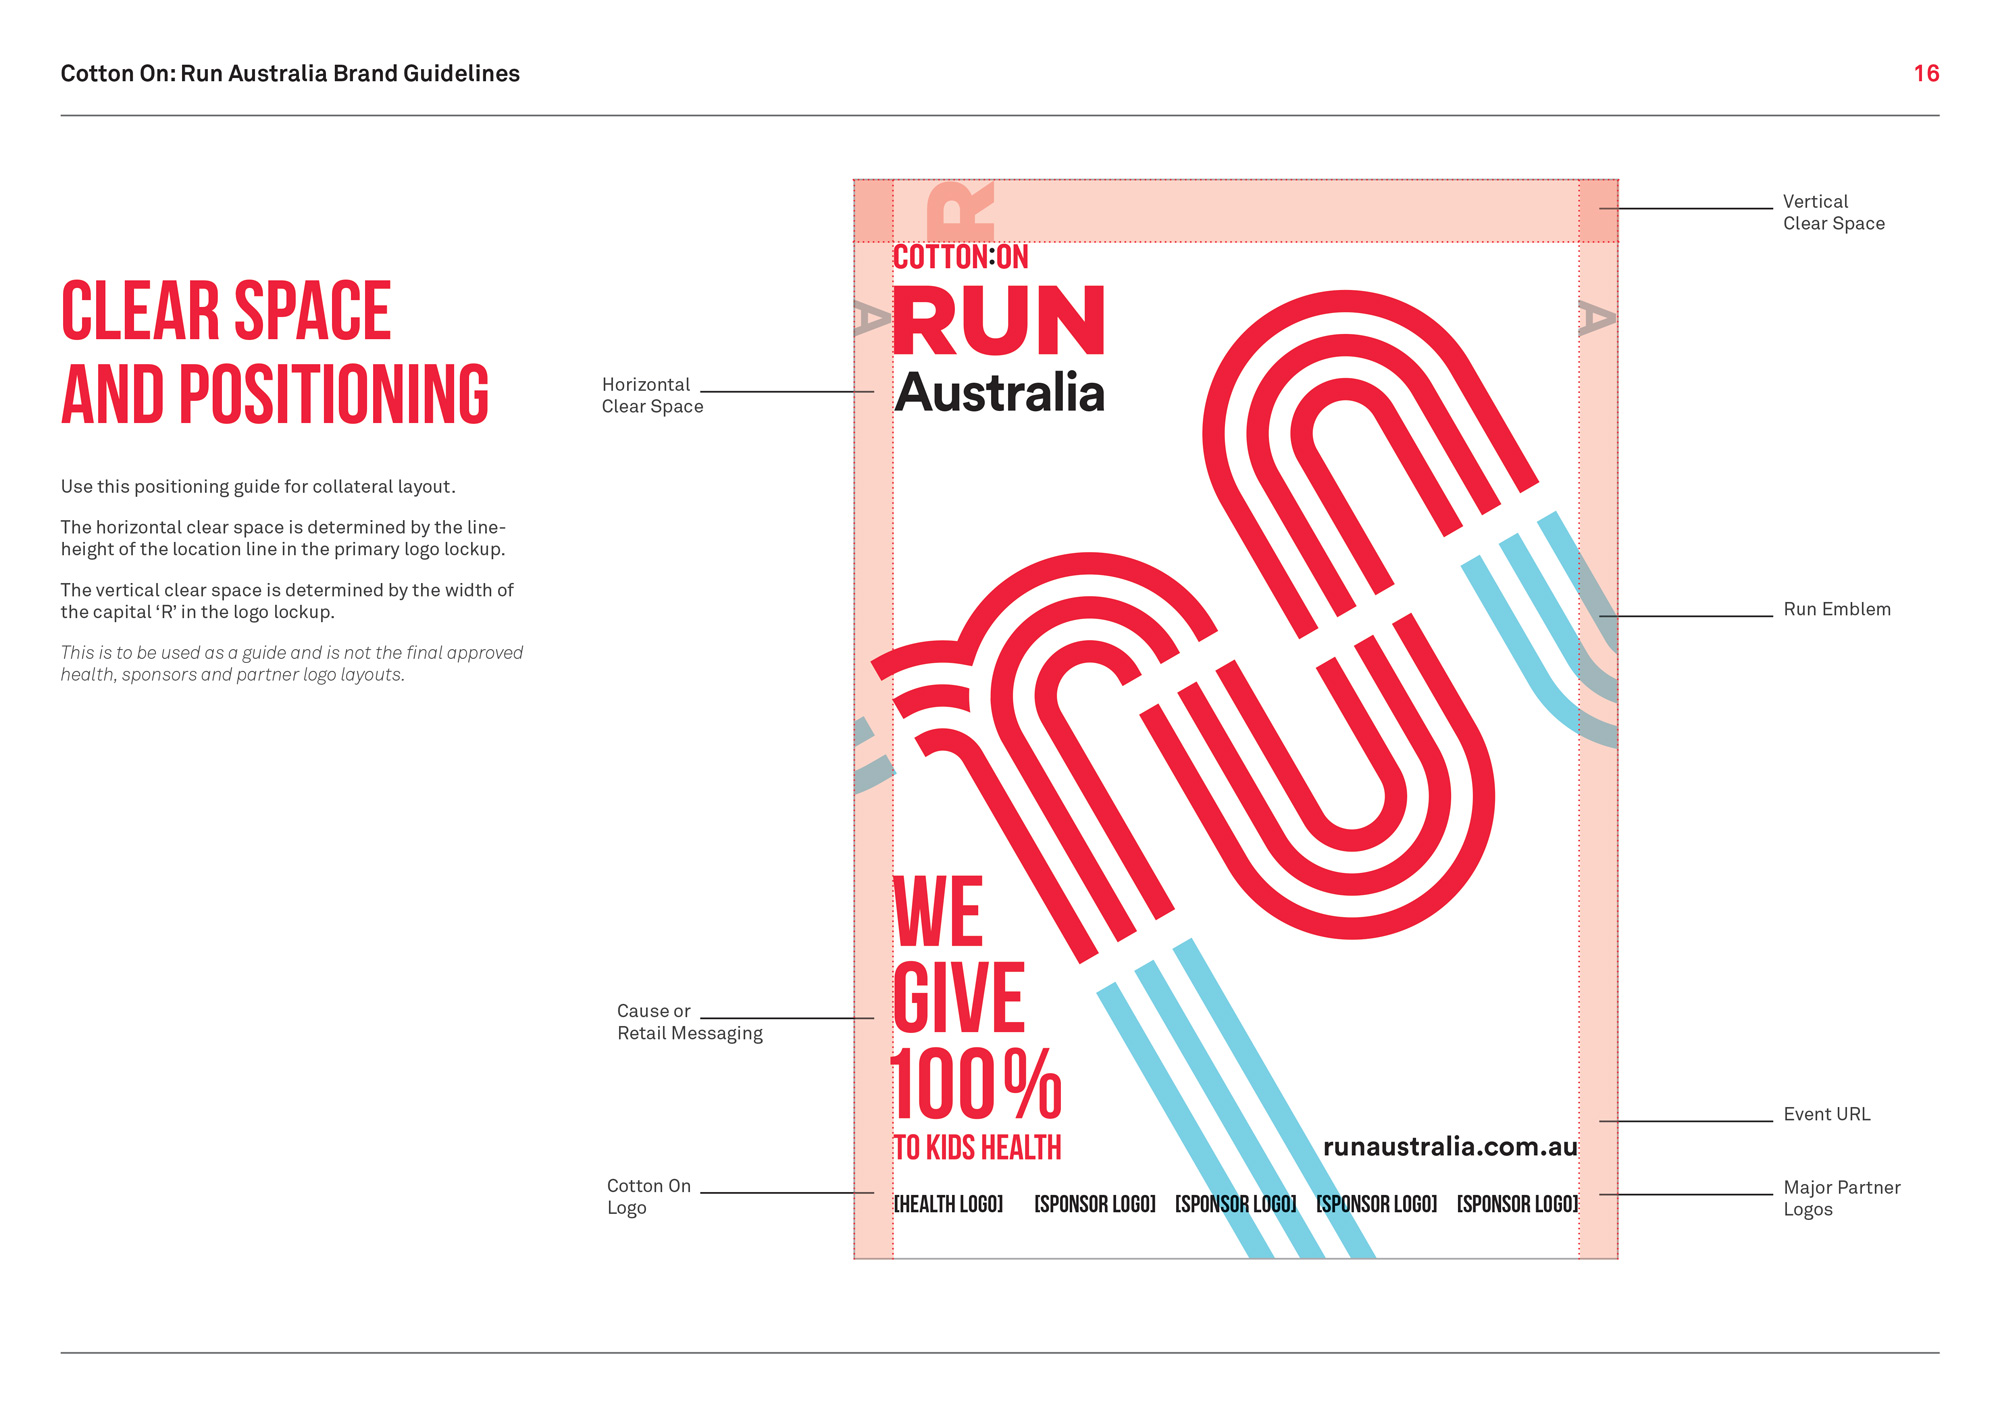 Poster layout brand guidelines for Cotton On's Run Australia.